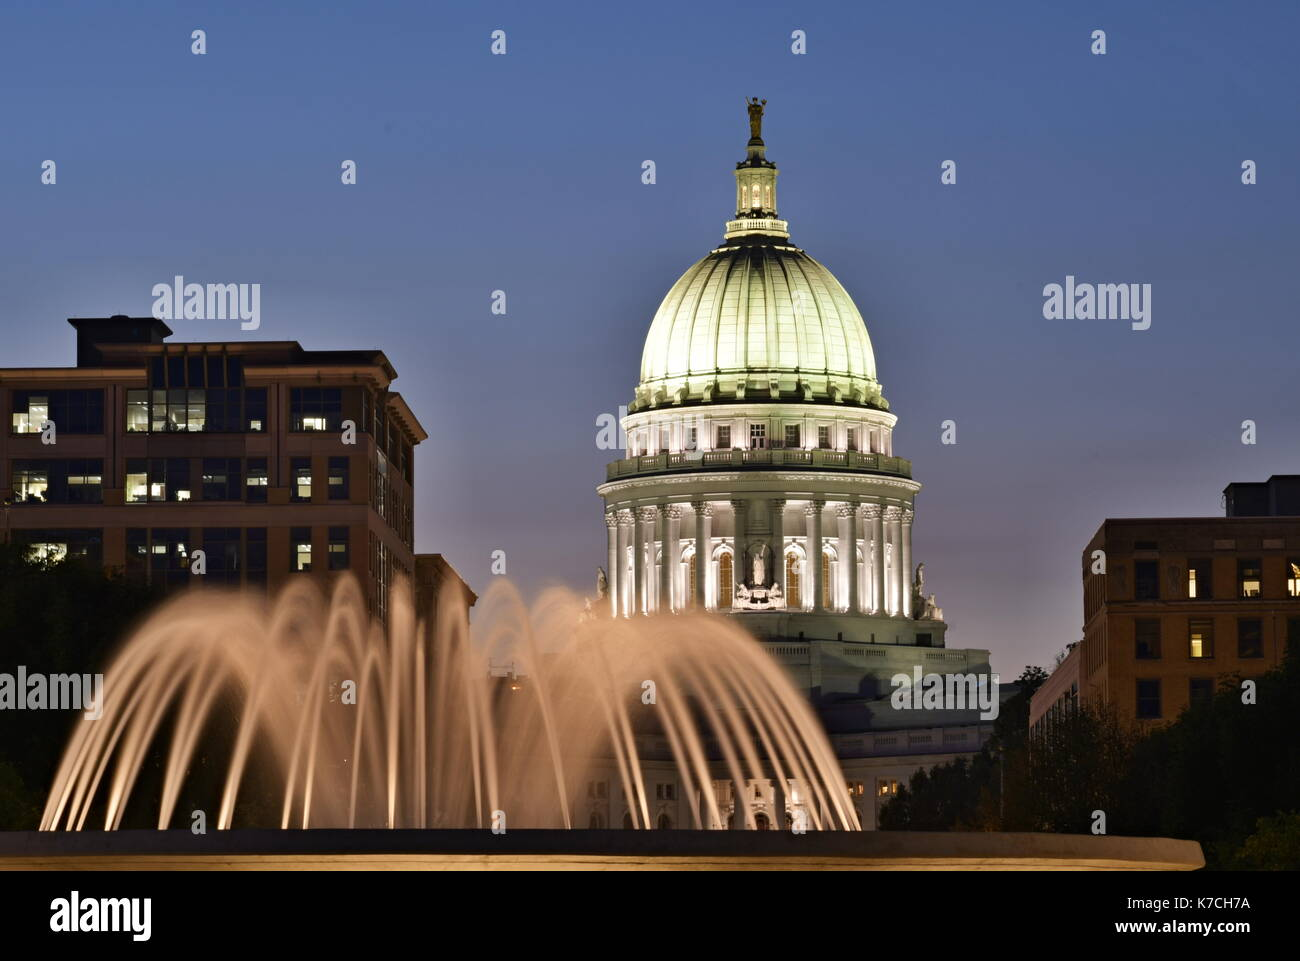 SEPTEMBER 12, 2017 - MADISON, WISCONSIN : The capital building dome in Madison, Wisconsin at night with the fountain Stock Photo